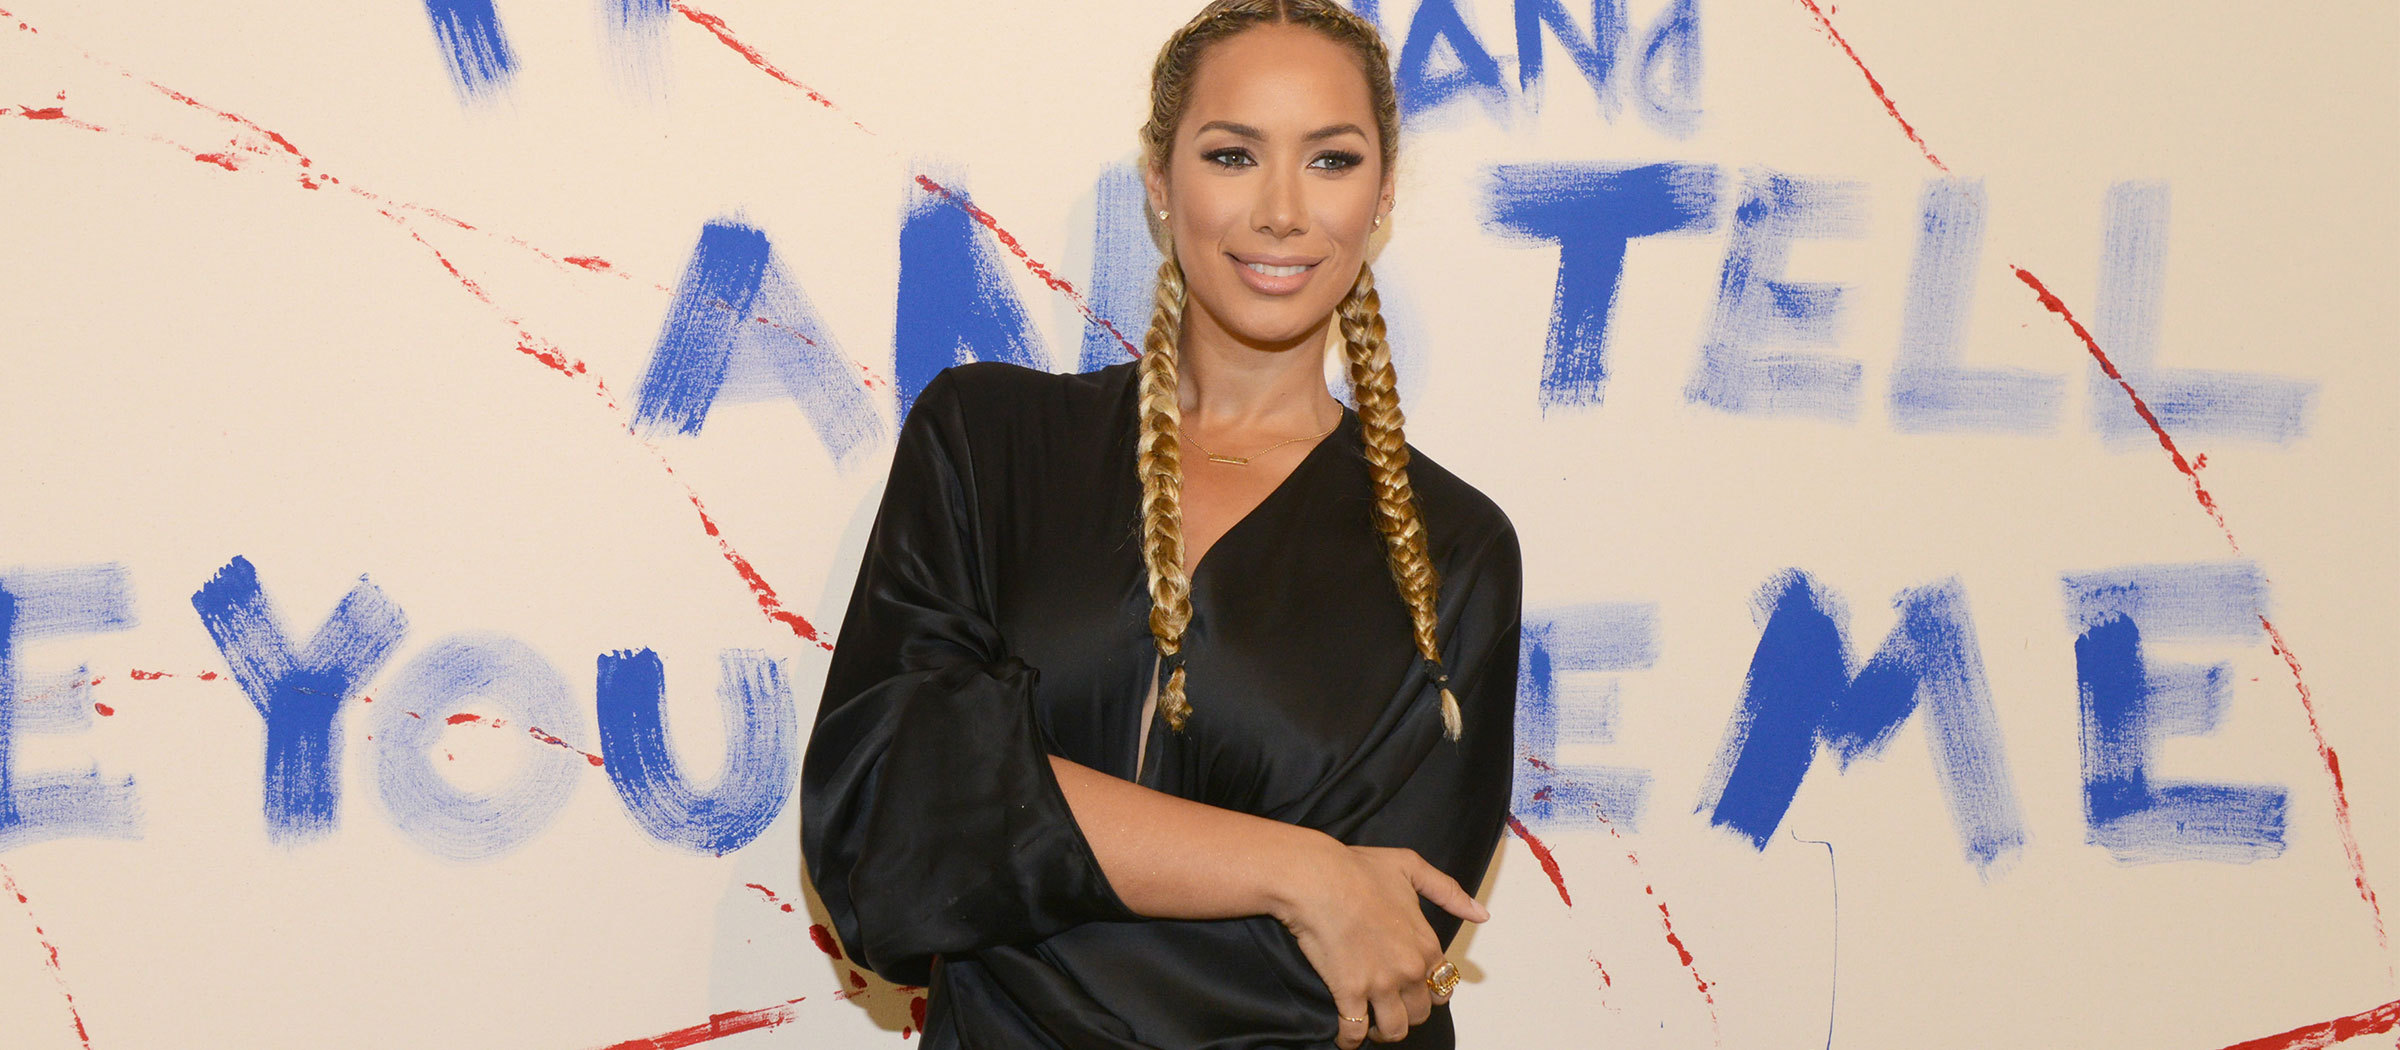 LEONA LEWIS | MTV STAYING ALIVE FOUNDATION | MTV RE:DEFINE 2016 | DALLAS CONTEMPORARY MUSEUM | THE GOSS MICHAEL FOUNDATION |    MASSIMO AGOSTINELLI    |